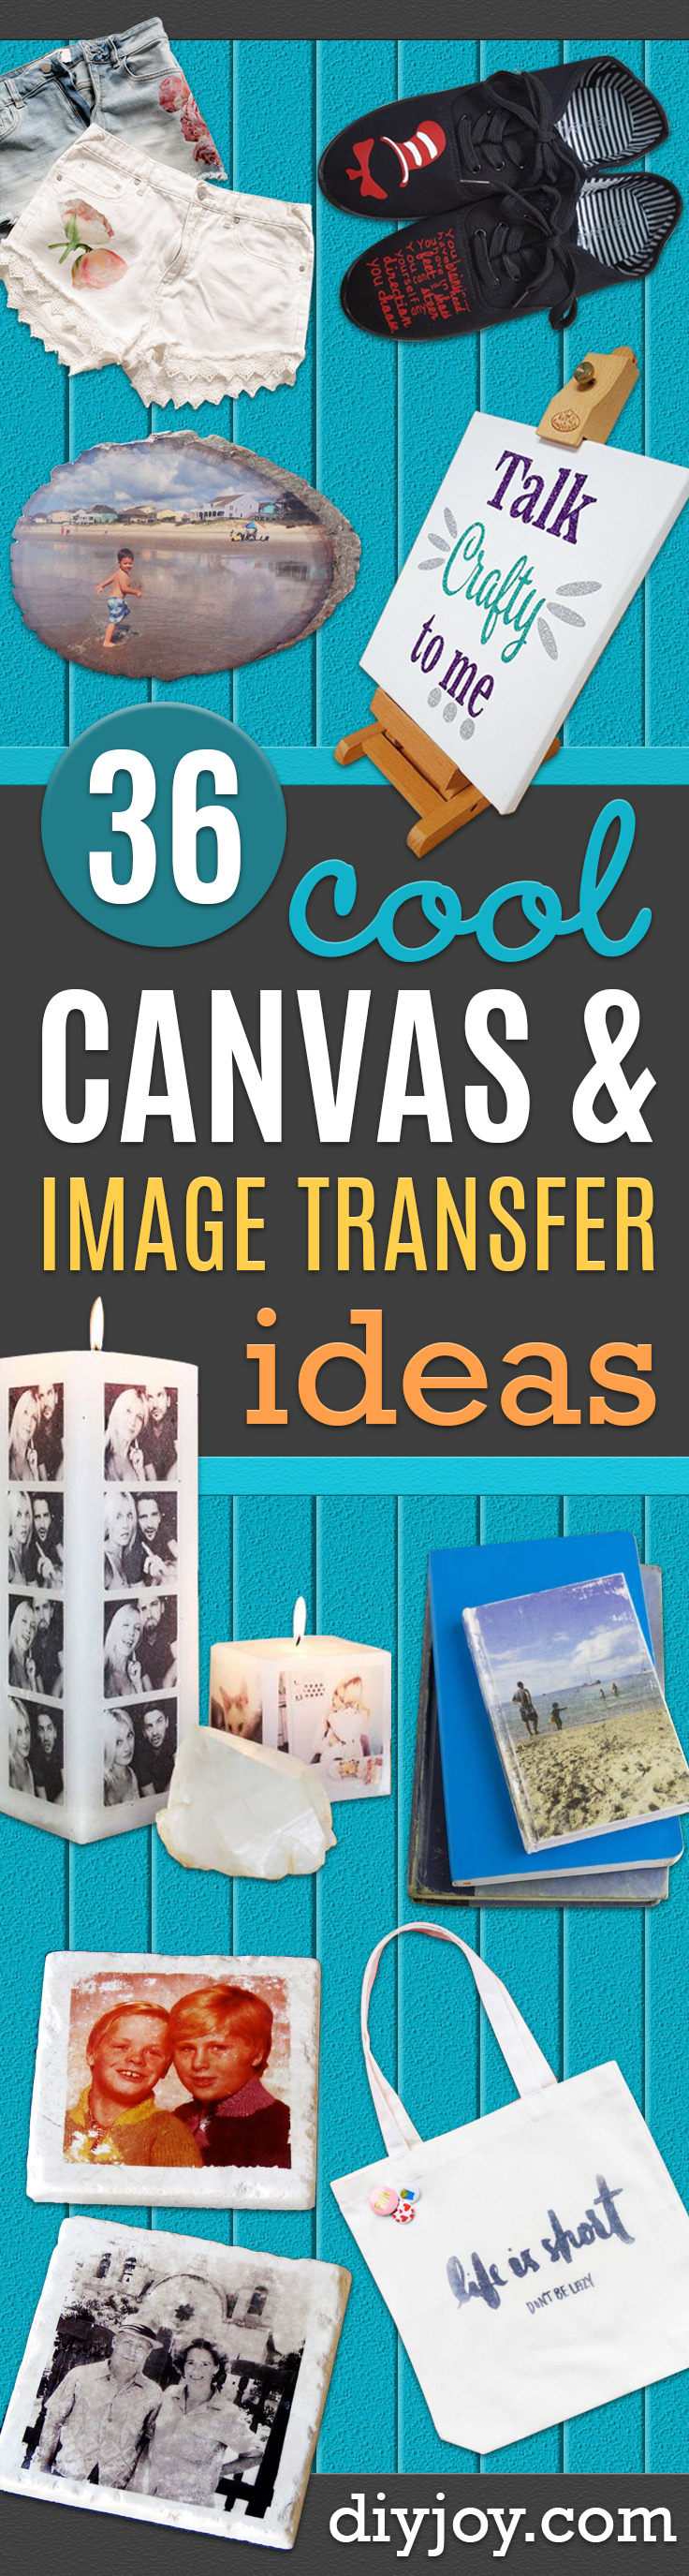 36 Cool Canvas and Image Transfer Ideas